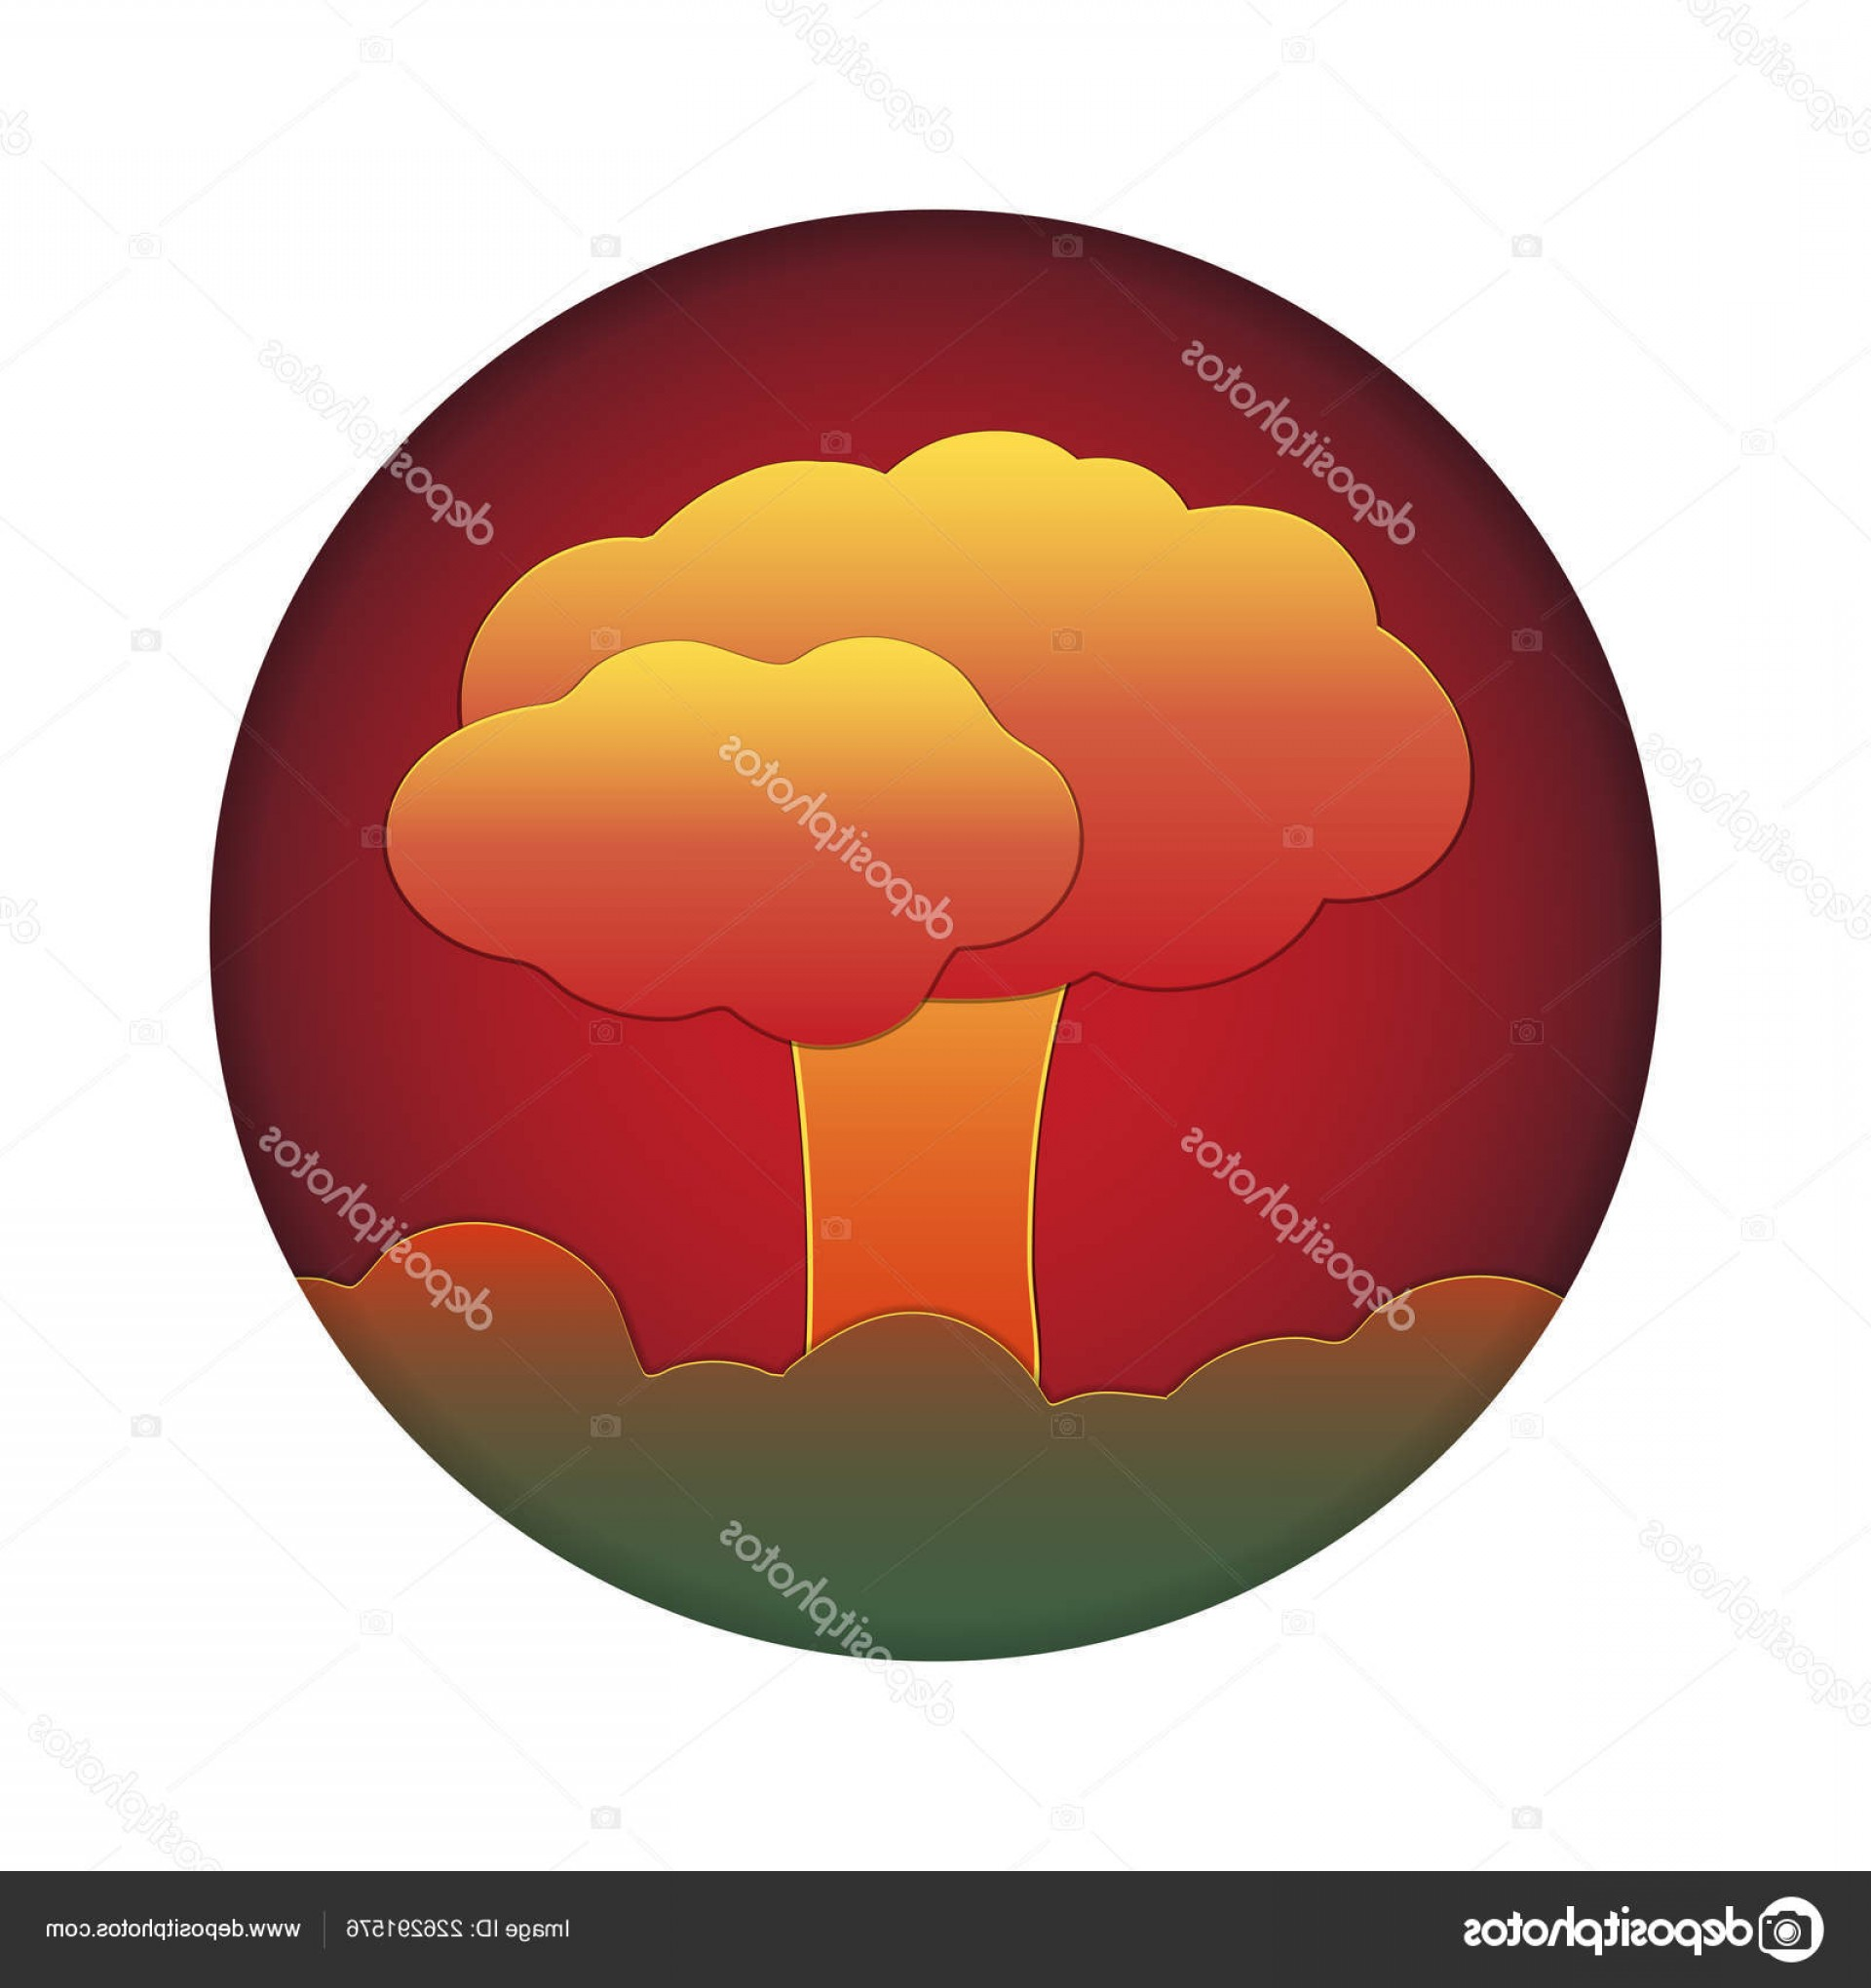 Atomic Bomb Explosion Vector: Stock Illustration Nuclear Explosion Atomic Bomb City